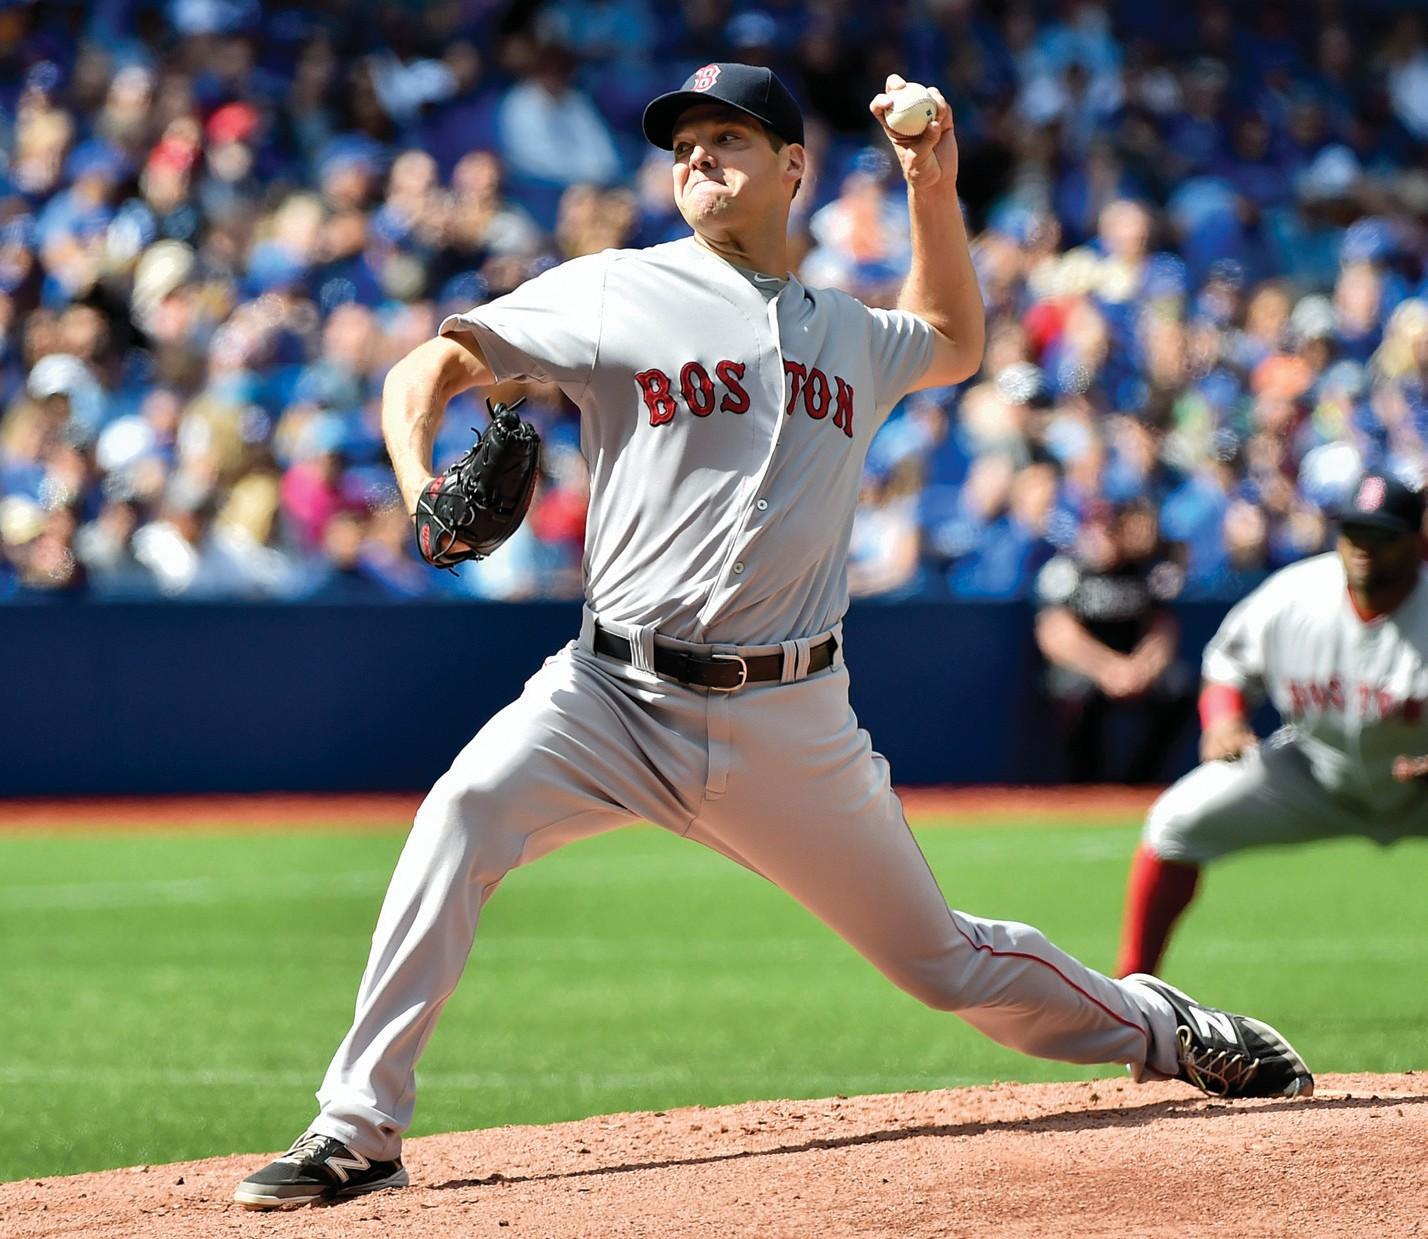 Boston Red Sox starting pitcher Rich Hill works against the Toronto Blue Jays during the first inning of a baseball game in Toronto on Sunday.